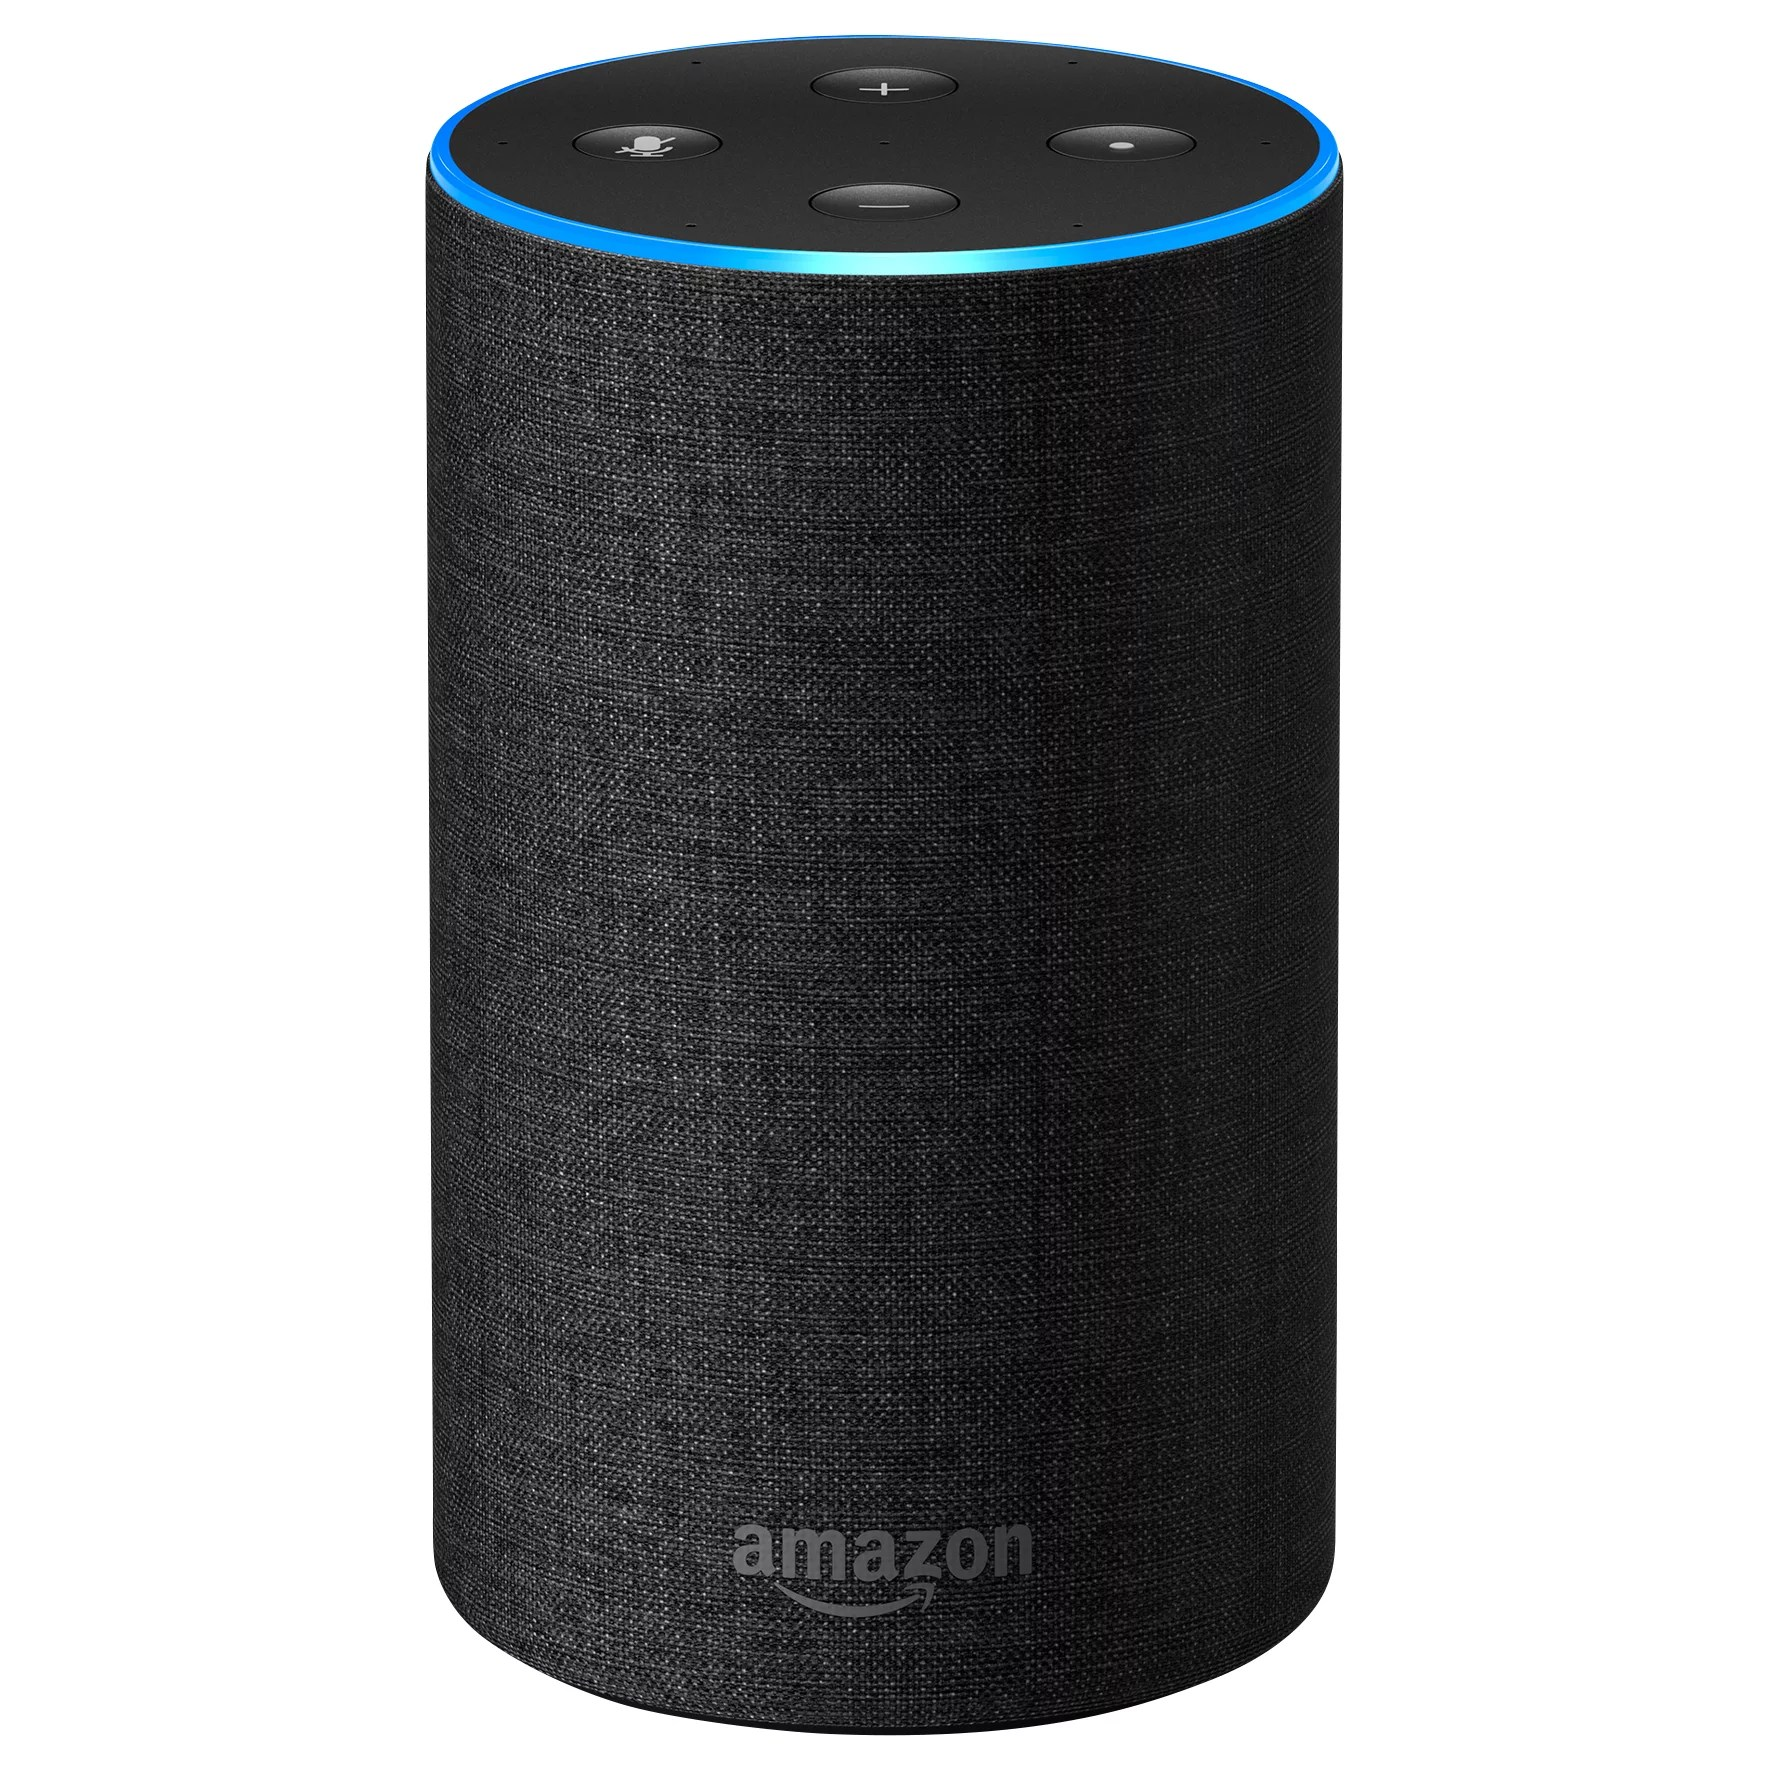 ???echo Amazon Echo Smart Speaker With Alexa Voice Recognition Control